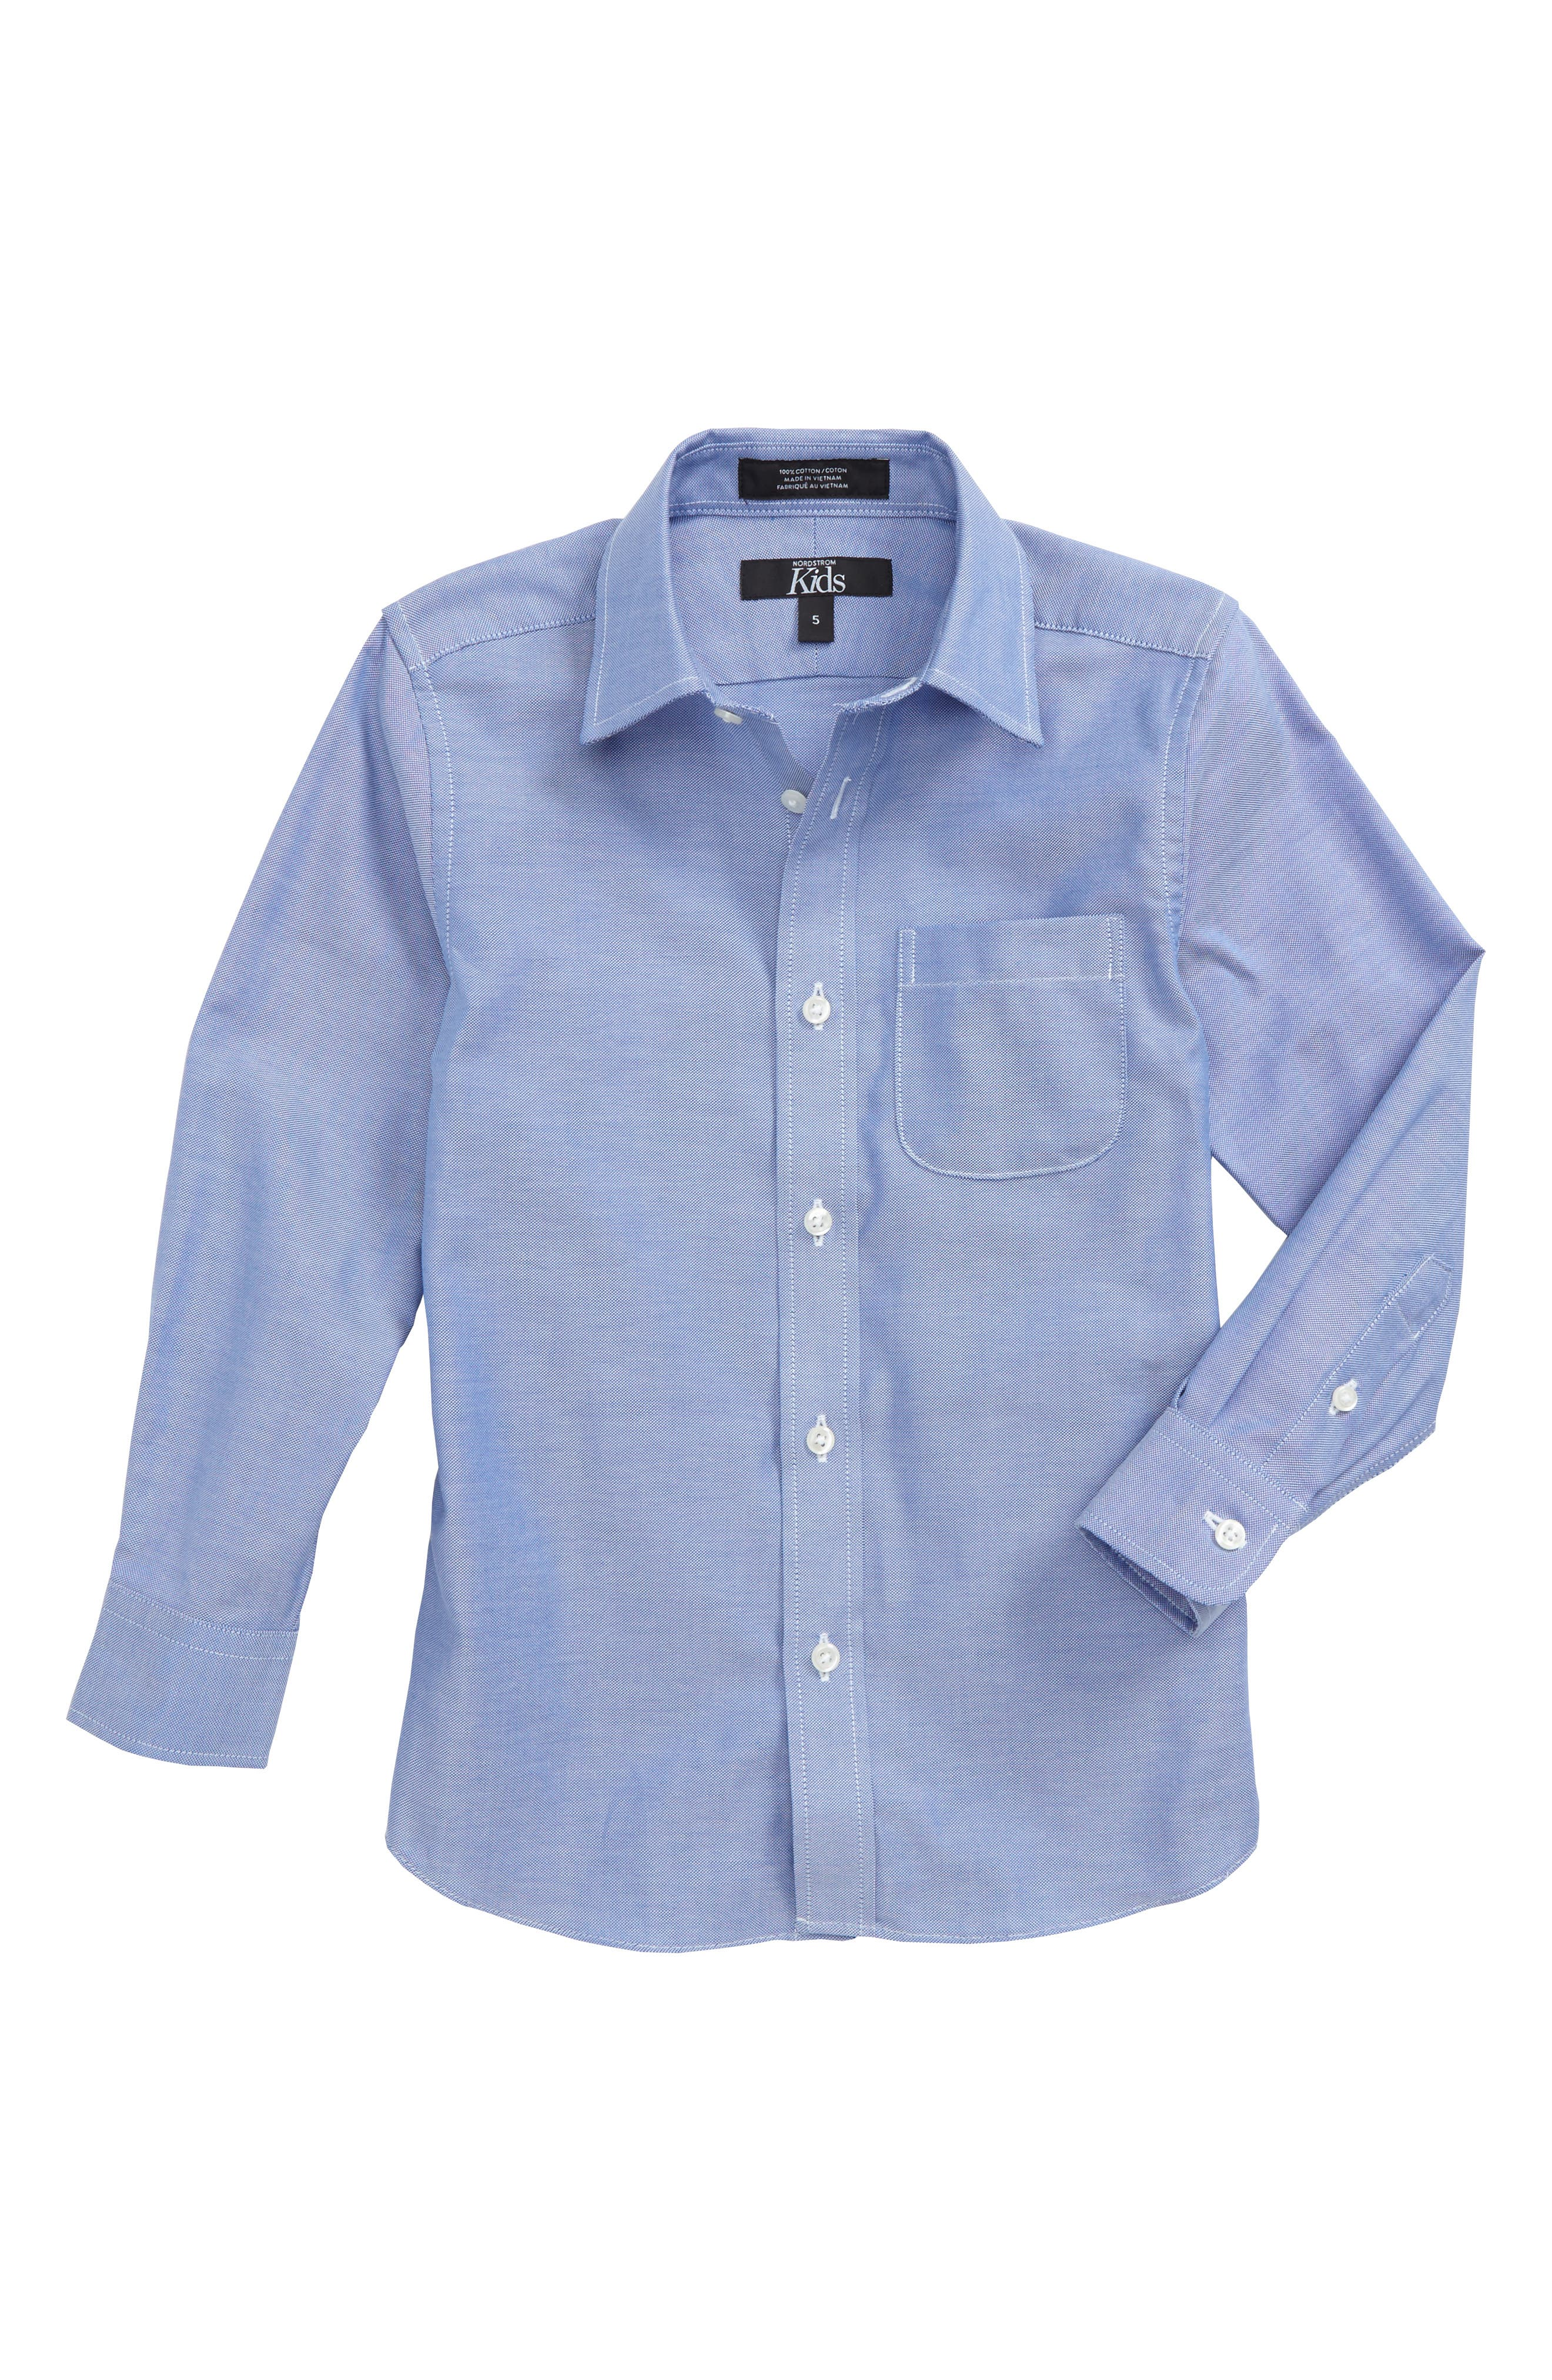 Nordstrom Neat Dress Shirt (Toddler Boys, Little Boys & Big Boys)